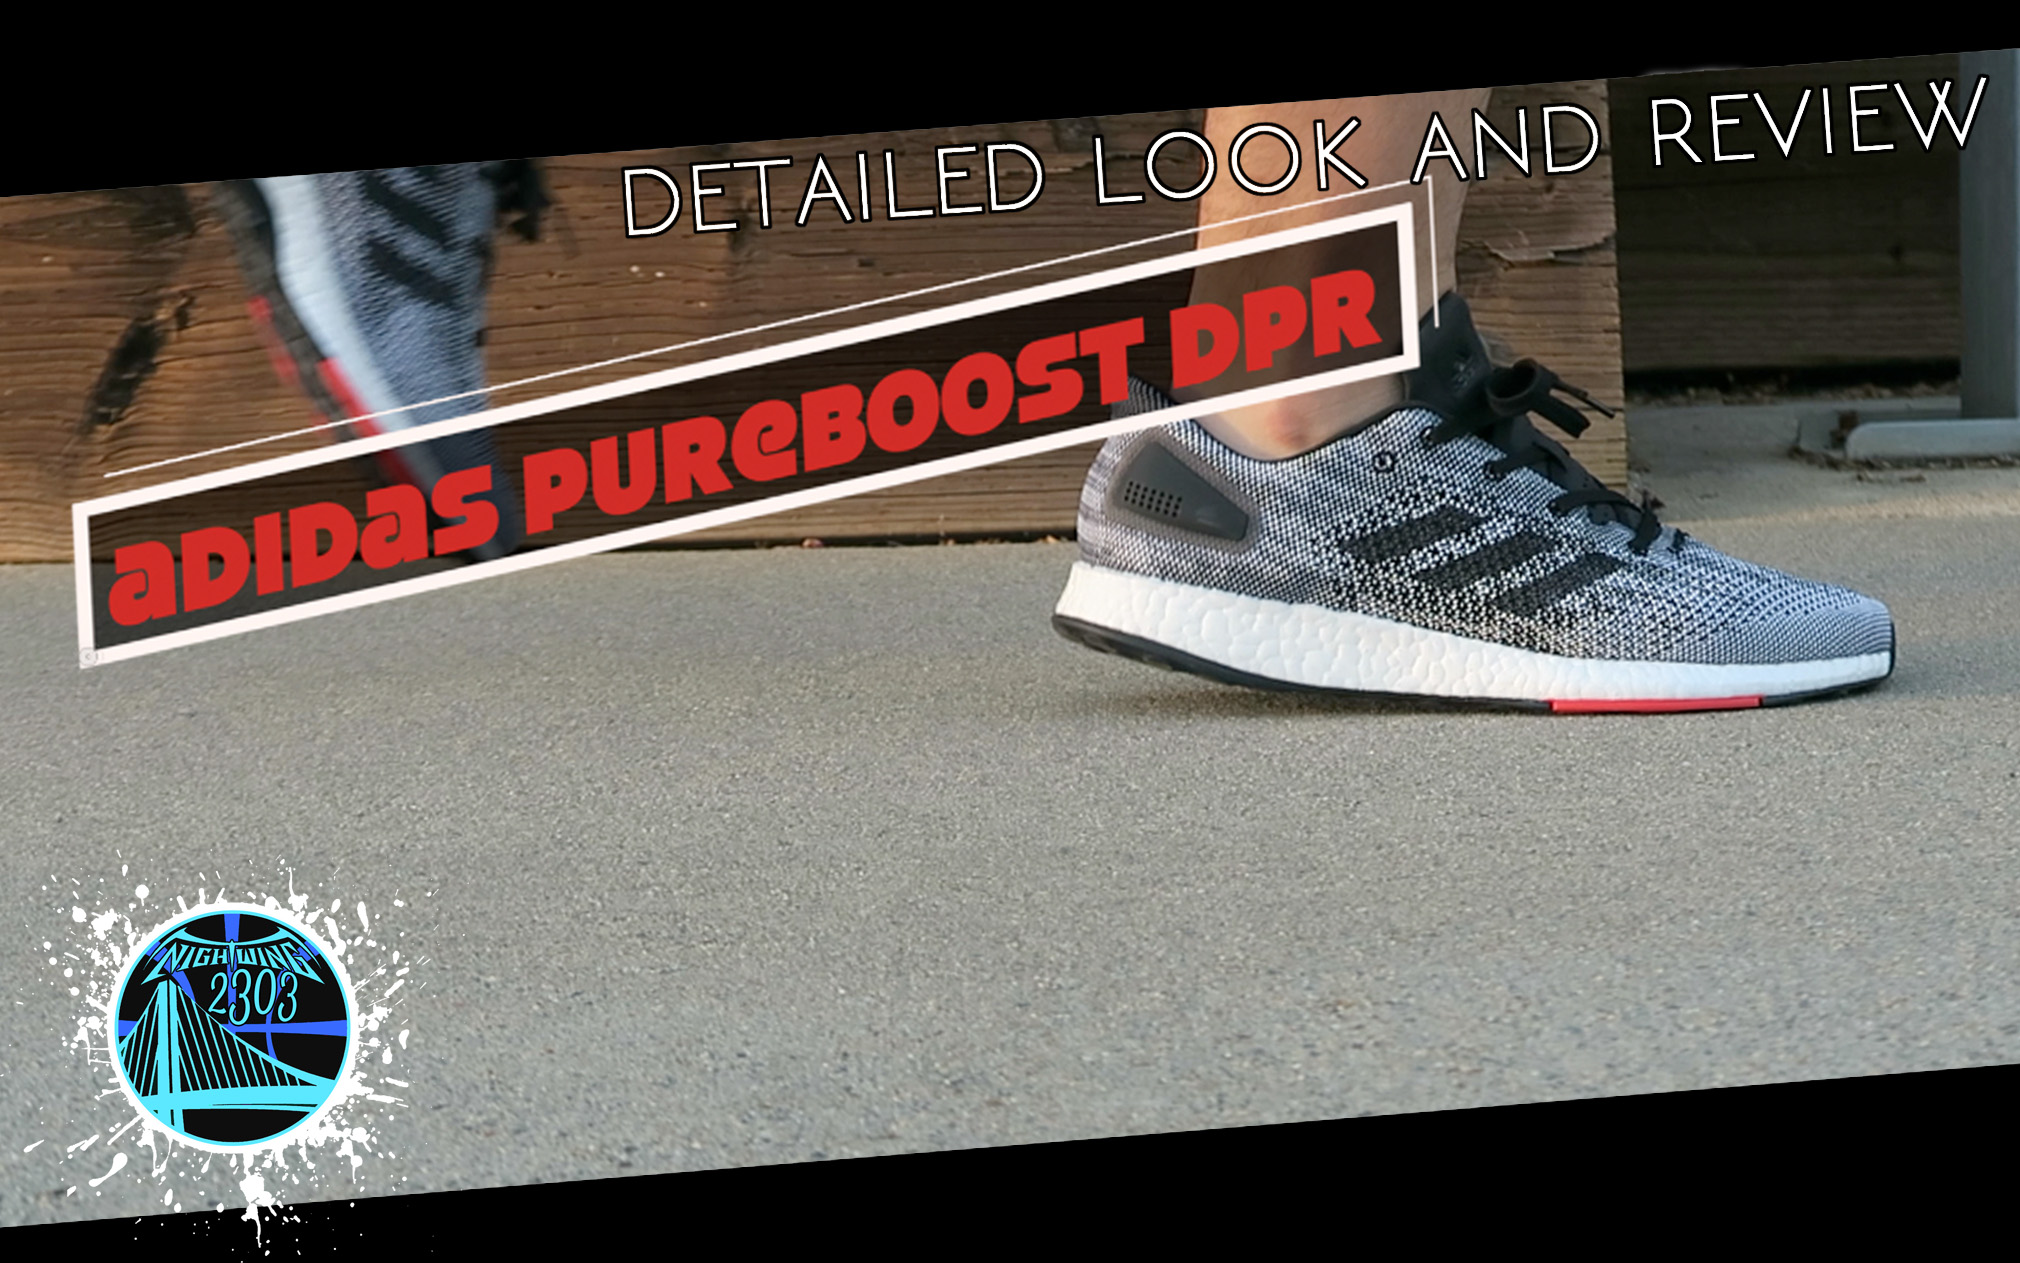 Tienda precio bajo estilo exquisito adidas PureBoost DPR | Detailed Look and Performance Review ...